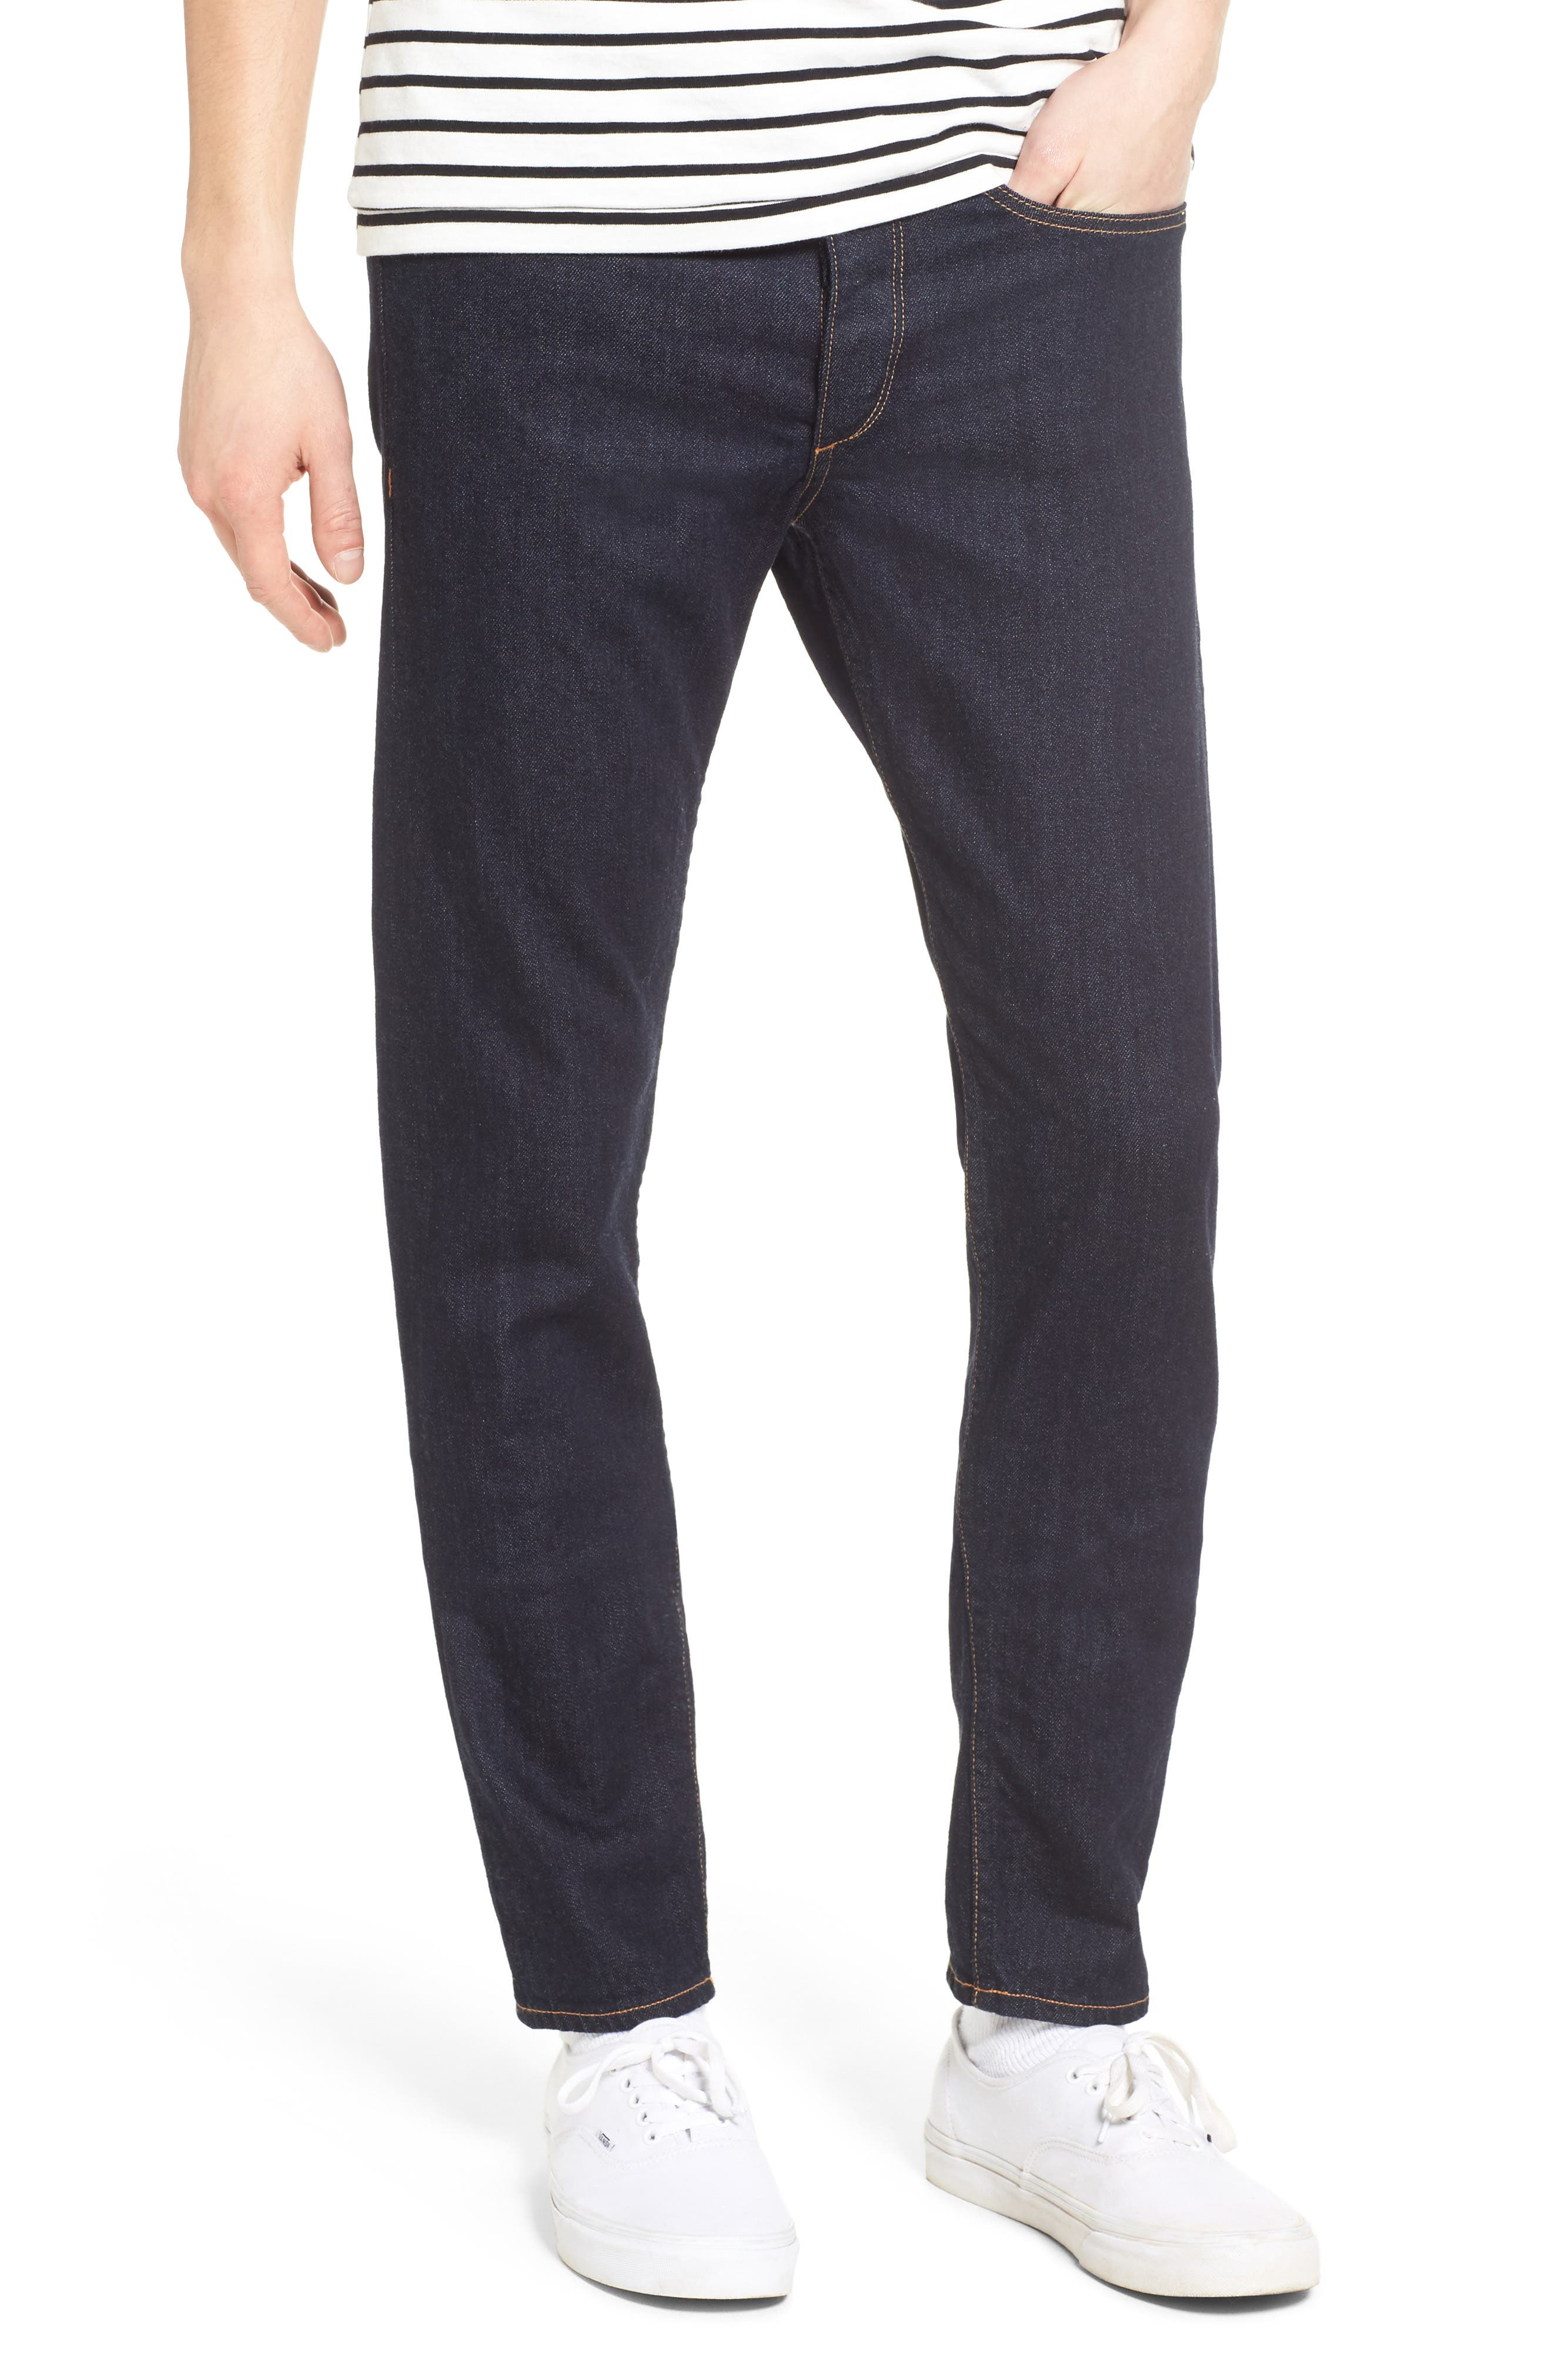 Standard Issue Fit 1 Skinny Fit Jeans,                             Main thumbnail 1, color,                             Rinse Selvage